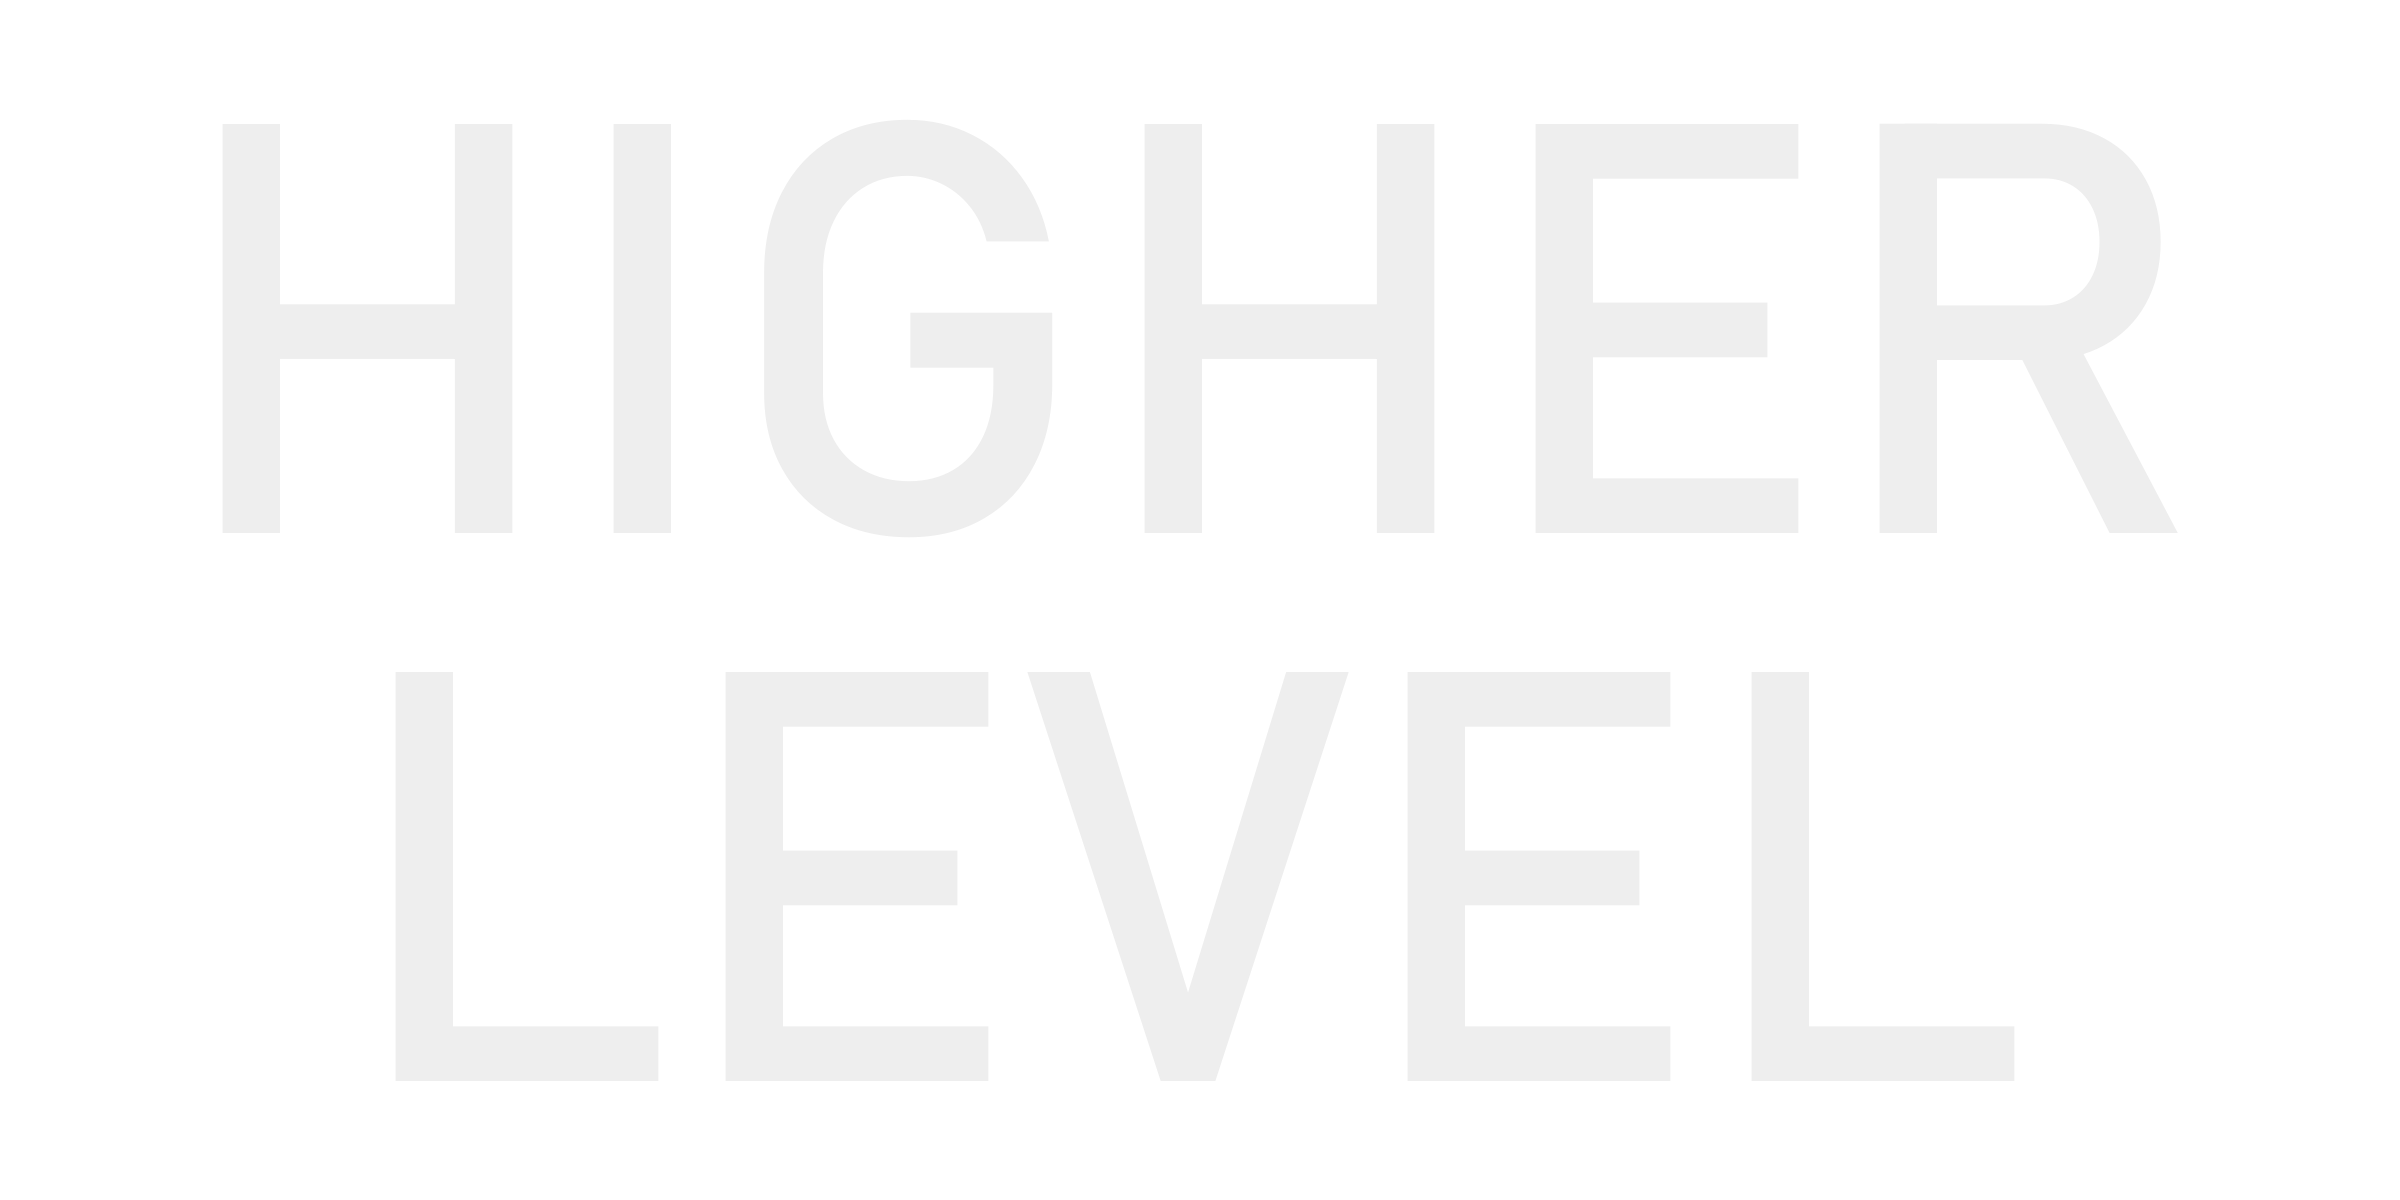 7th - 12th Grade - The Higher Level youth ministry is a safe place for students to be together, to meet leaders who care about them, and to learn about Jesus Christ and His love for them.